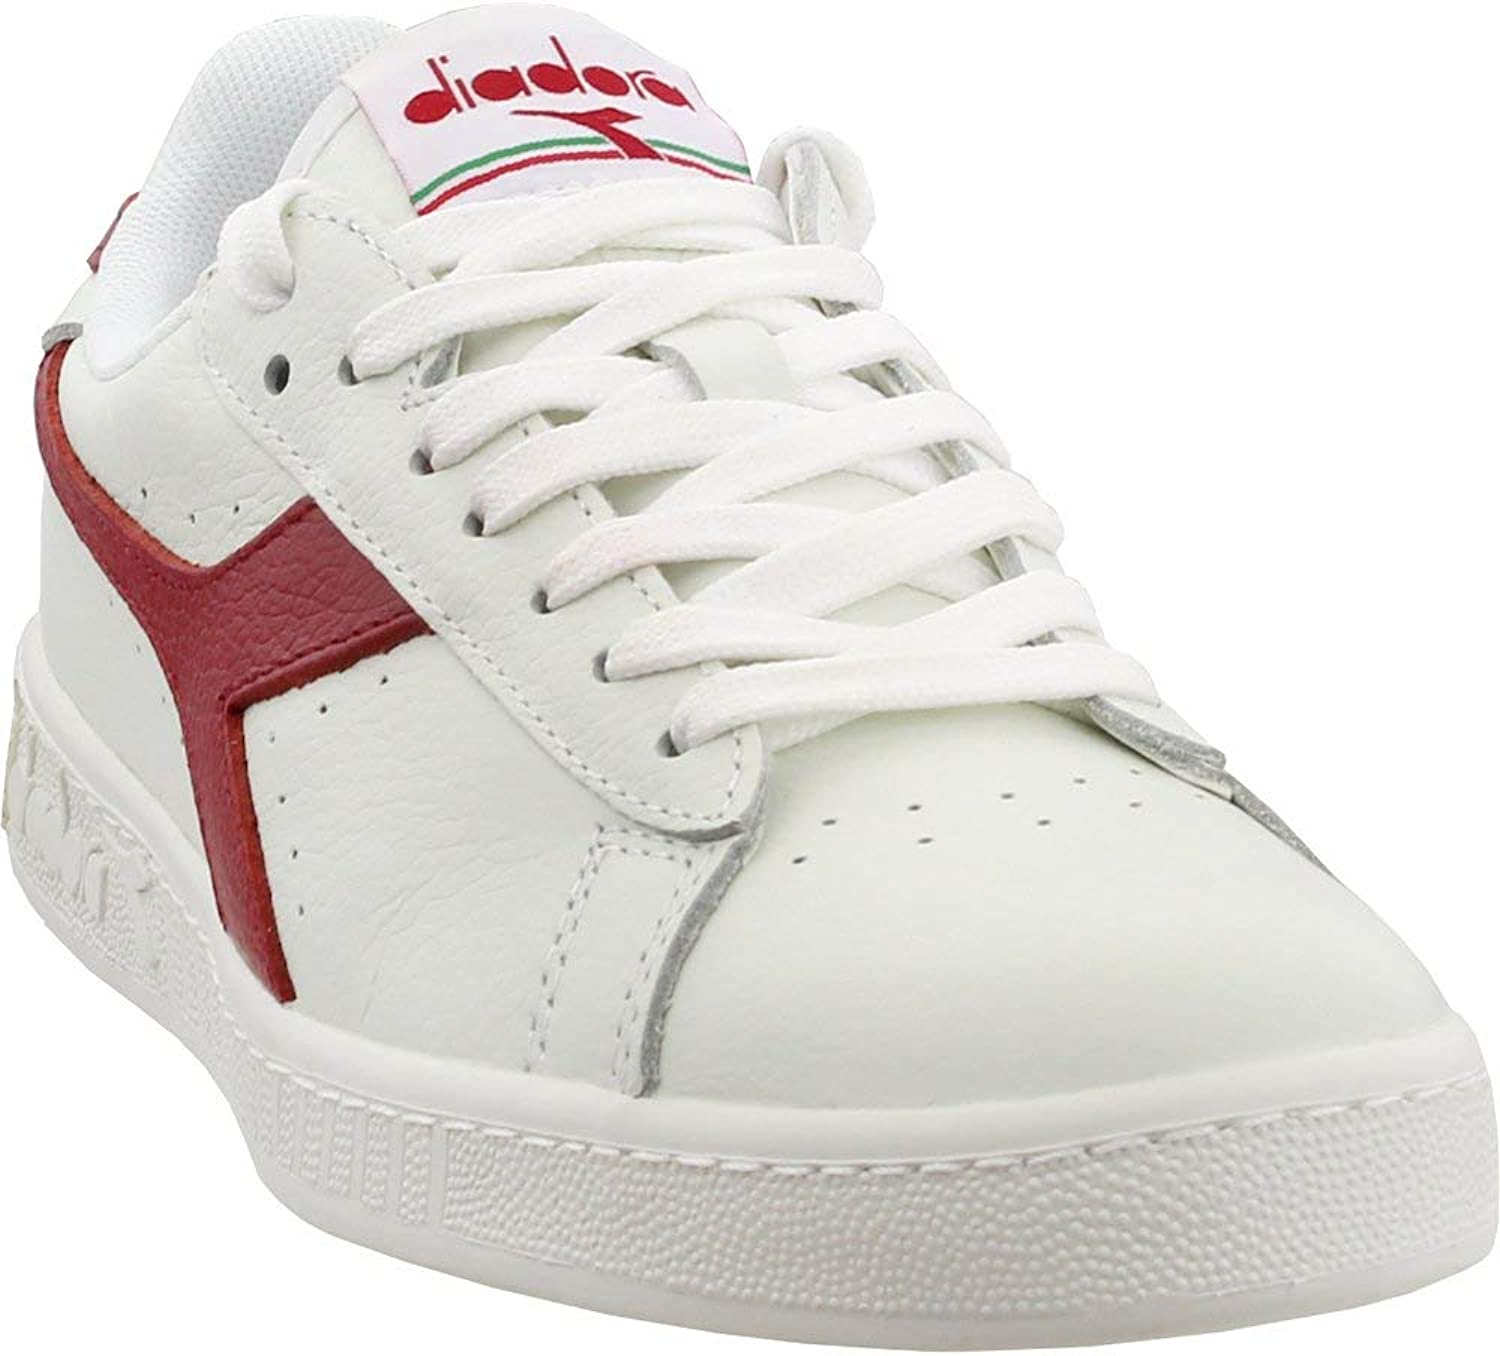 Diadora Unisex Game L Low Casual shoes White